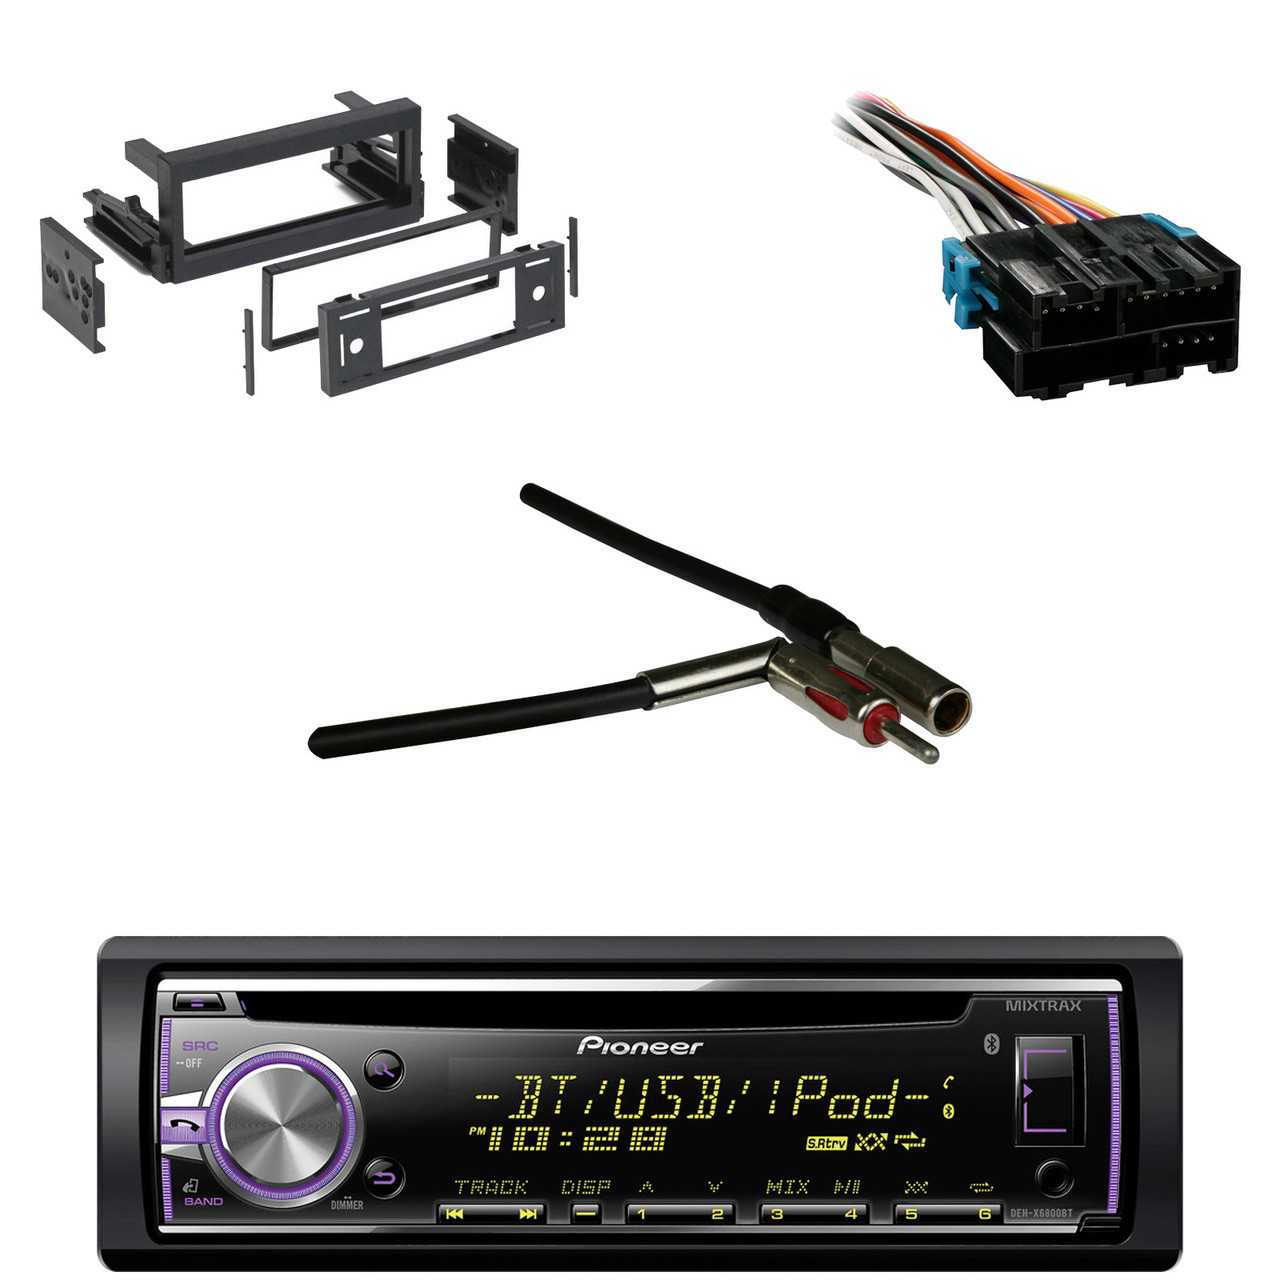 medium resolution of bluetooth pioneer cd car receiver gm wire harness antenna adapter metra din kit